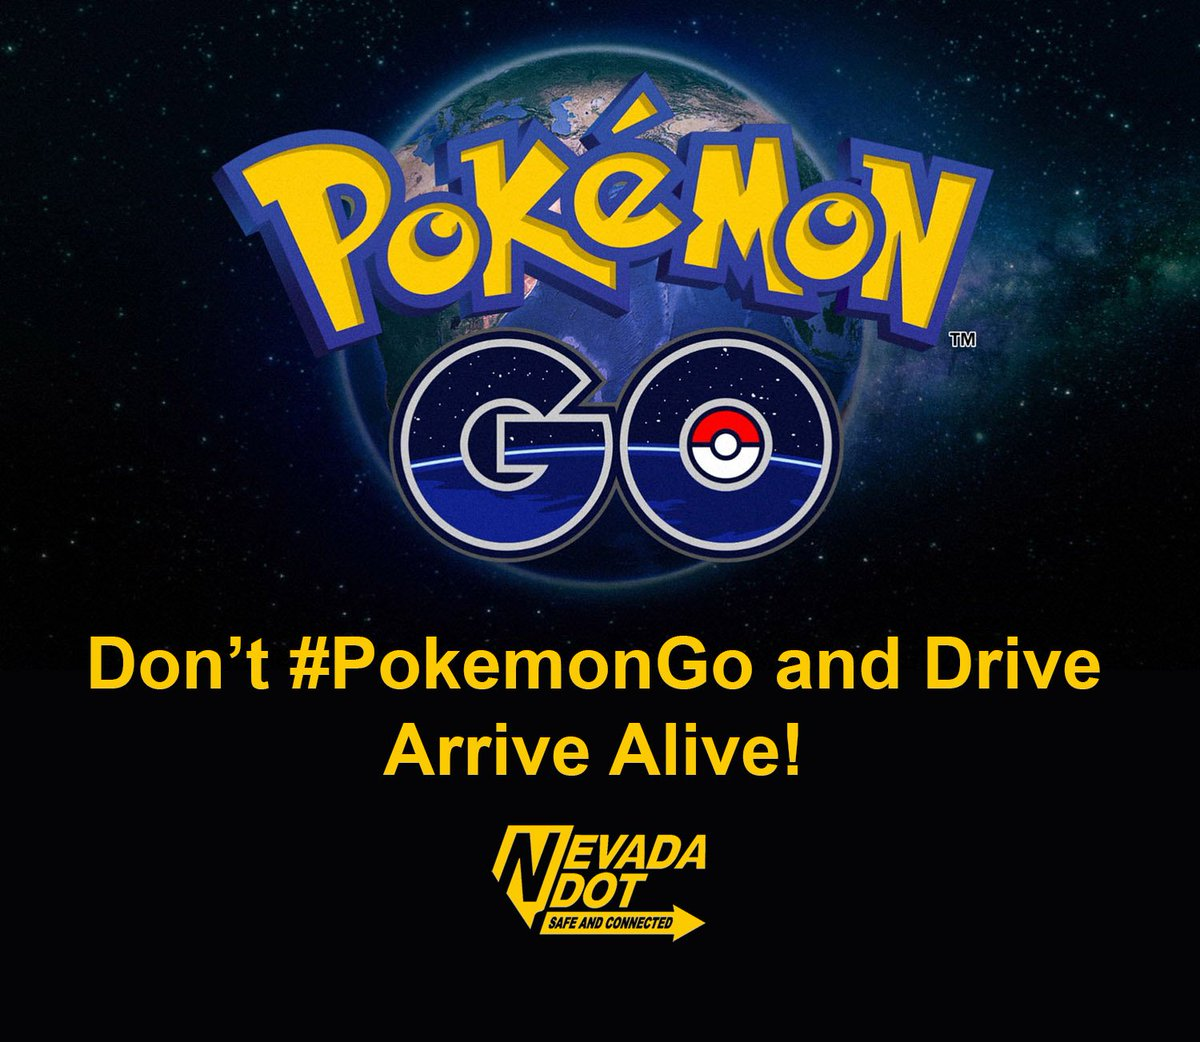 Don't #PokemonGo and Drive. Arrive Alive. @DriveSafeNV @StayingUndead @NevadaDPS @AAA_Nevada @RTCSNV @RTCWashoe https://t.co/qH7wsLhm8E